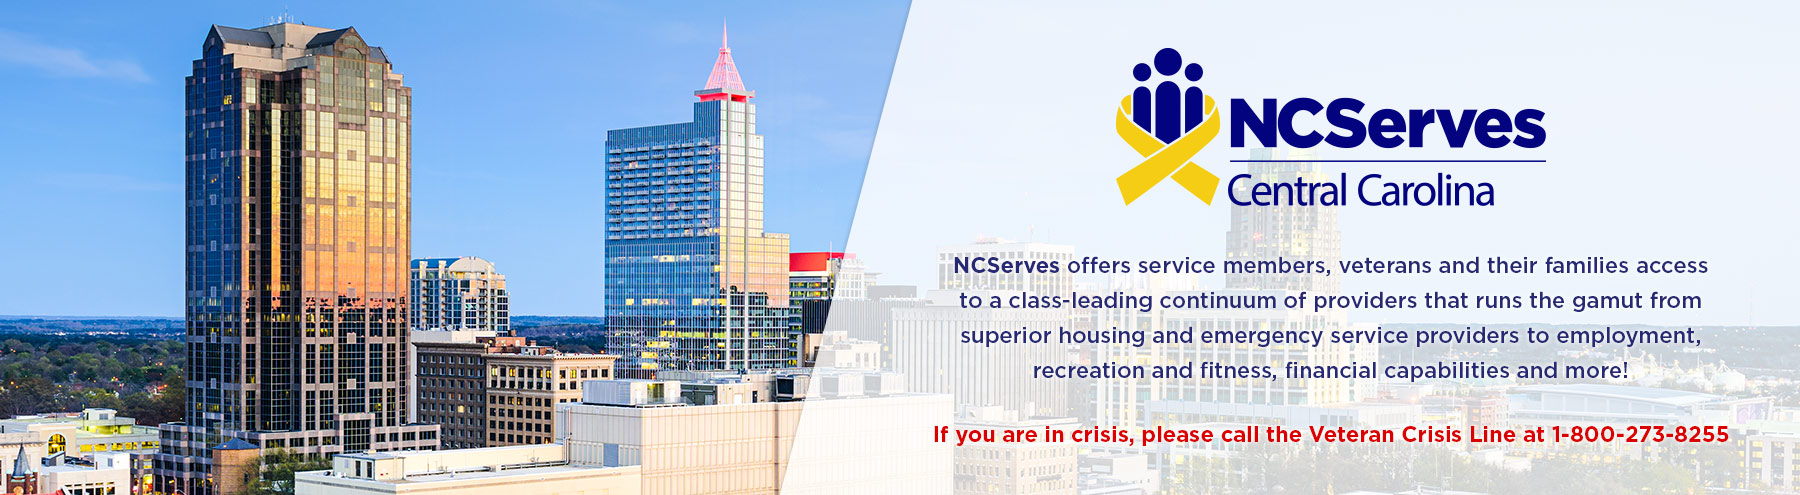 If you are in crisis, please call the Veteran Crisis Line at 1-800-272-8255.  NCServes - Central Carolina offers service members, veterans and their families access to a class-leading continuum of providers that runs the gamut from superior housing and emergency service providers to employment, recreation and fitness, financial capabilities and more!